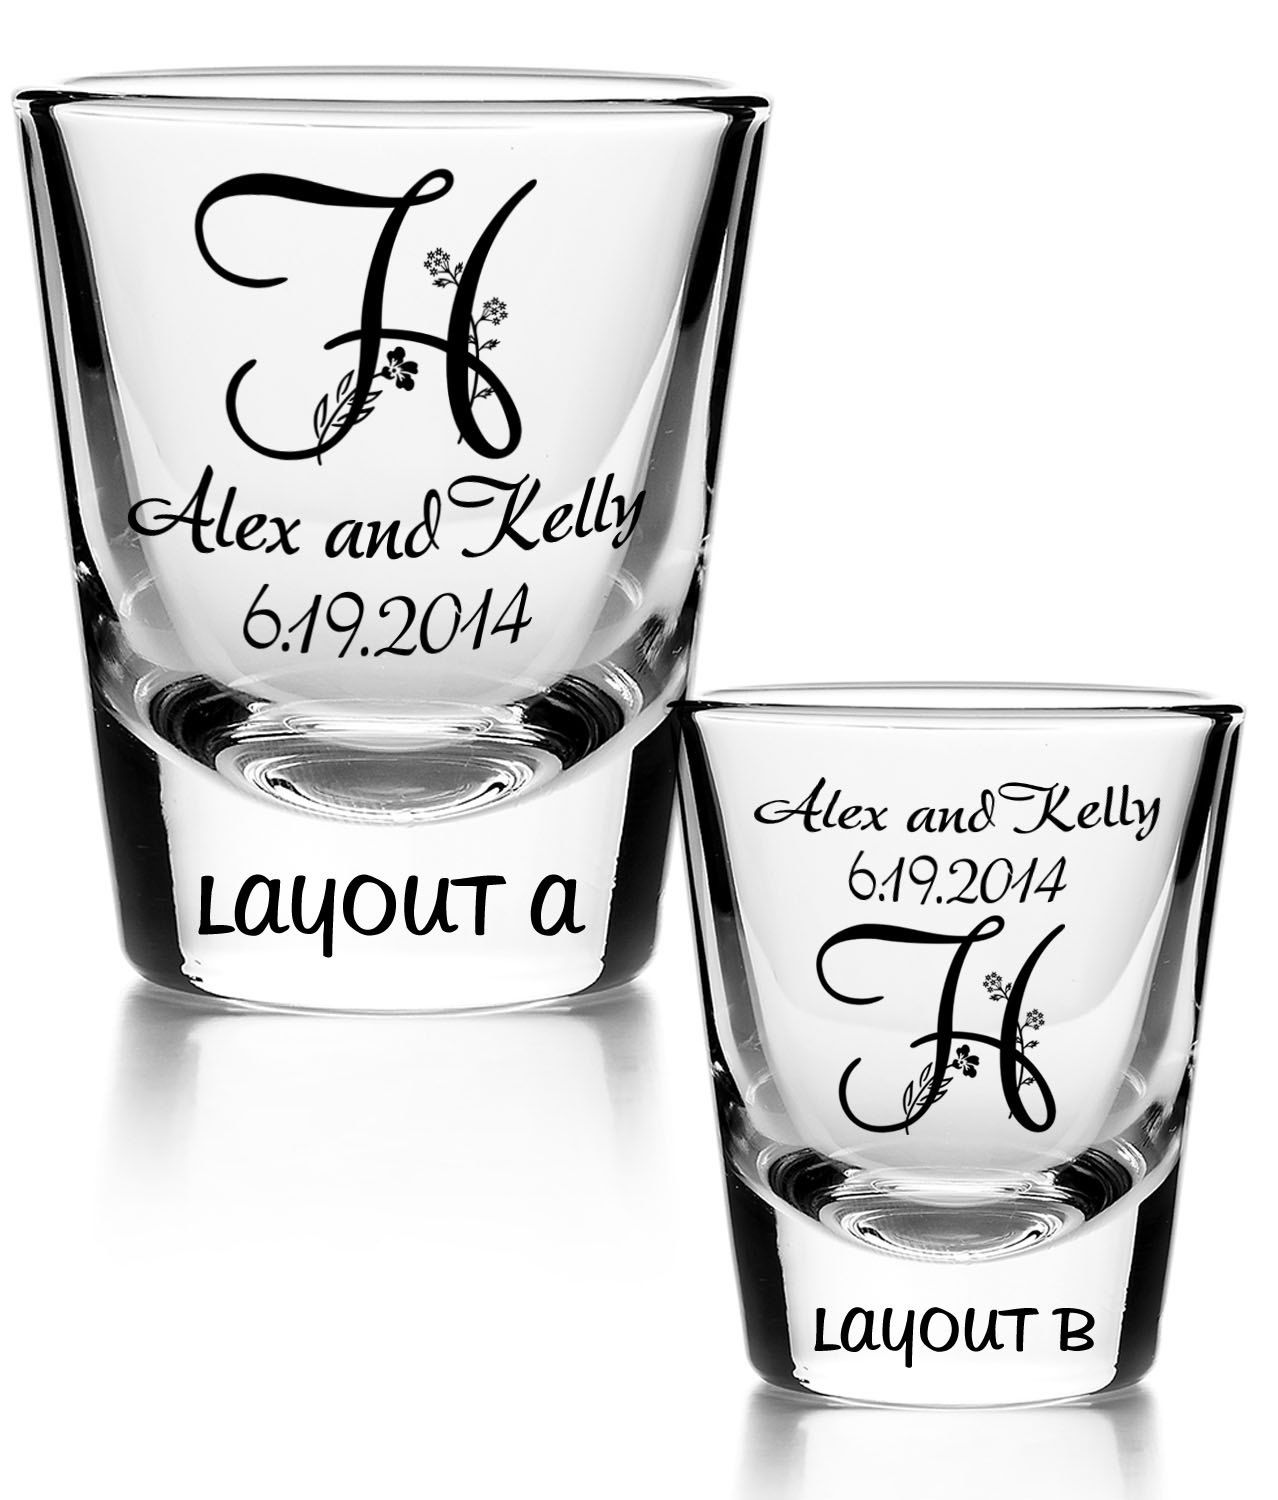 100 Personalized imprinted shot glass wedding favor by FavorsbyJay ...